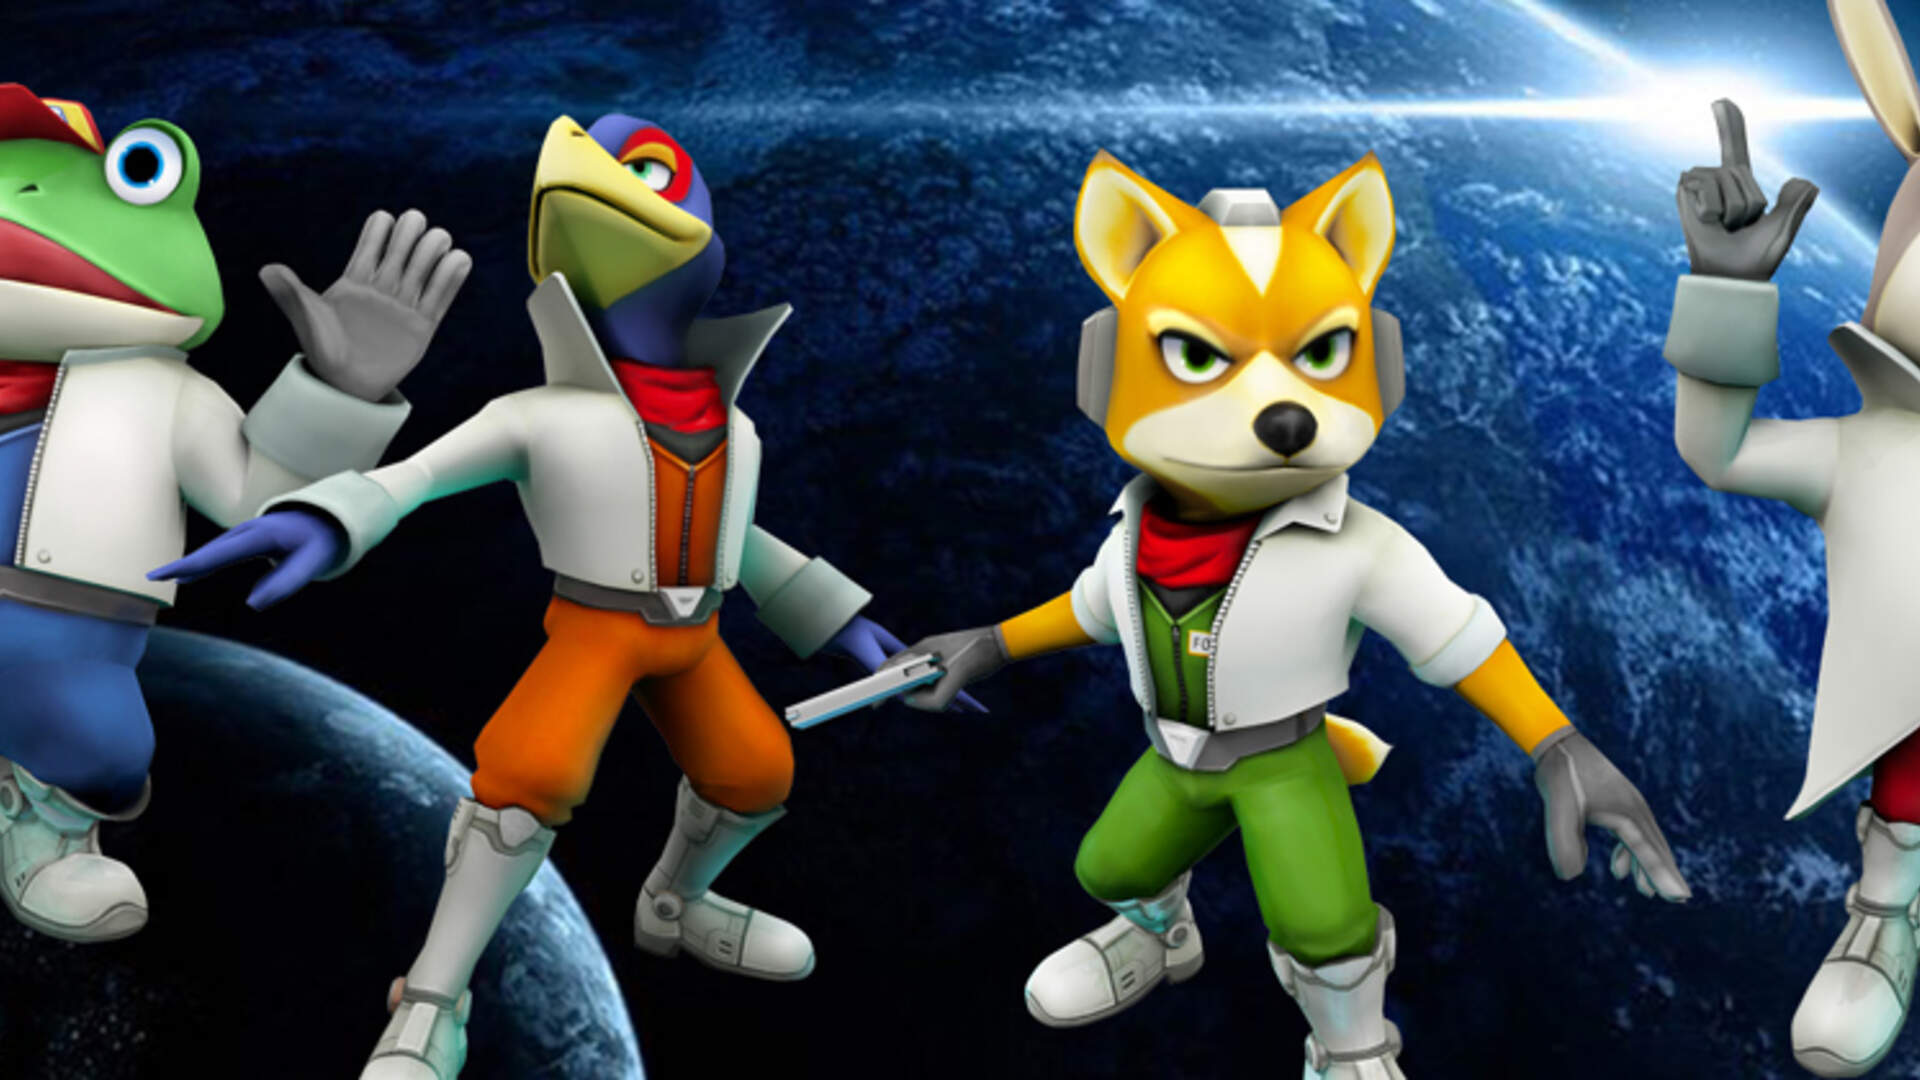 Tuesday Stream: Kat Saves the Lylat System in Star Fox 64